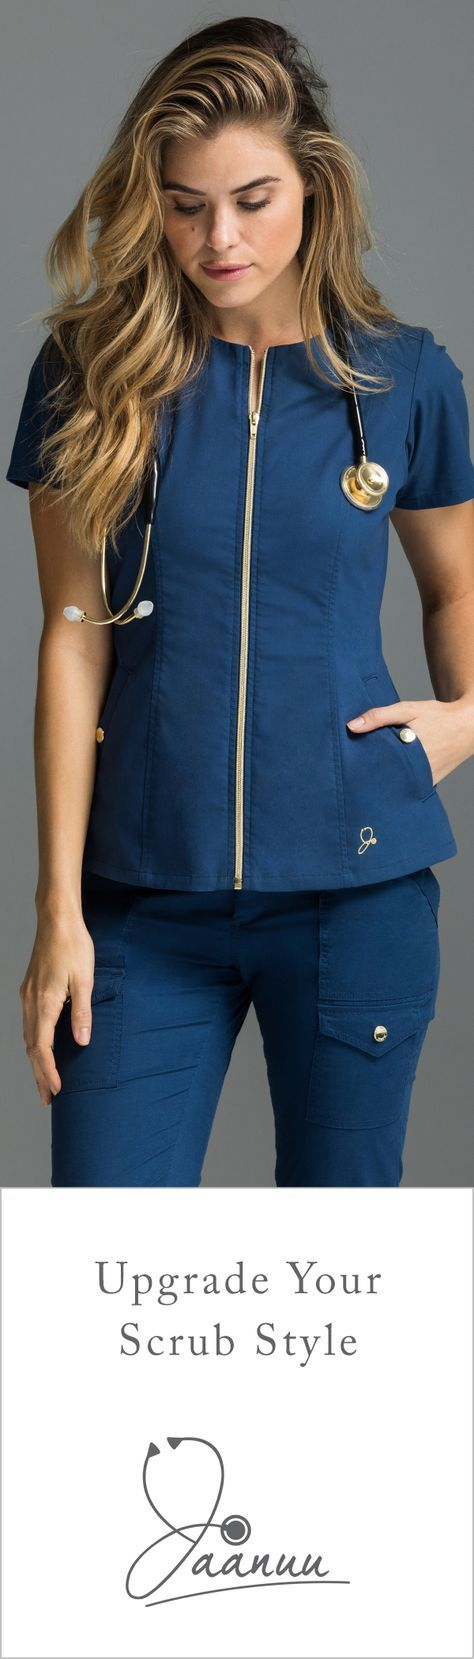 Where high-tech fabrics meet high-fashion designs, Jaanuu is reimagining your everyday work uniform. Get our latest moisture wicking, odor-resistant scrub sets, perfect for every day of the week. Free shipping and returns. Save 20% with PIN20 at checkout.